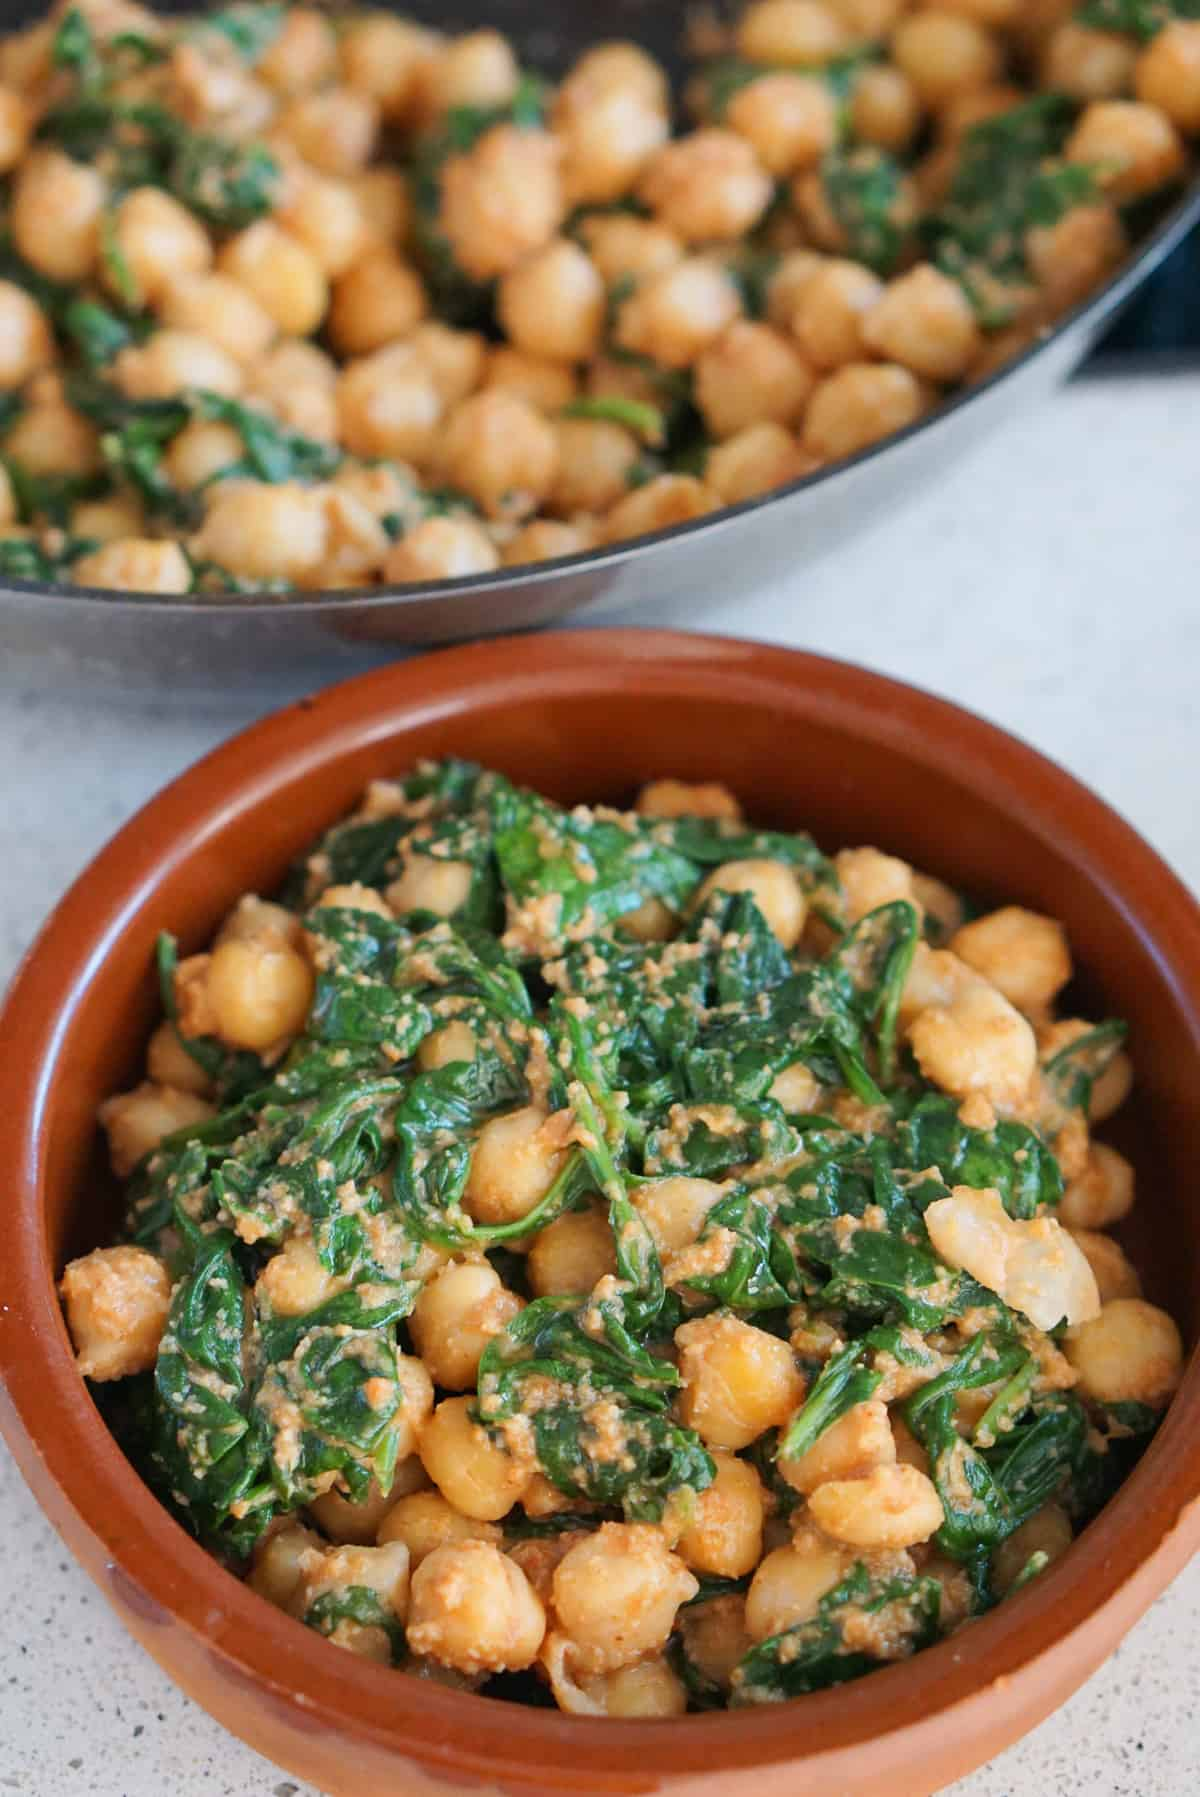 Spinach and chickpea stew in a clay dish in front of a pan full of more.